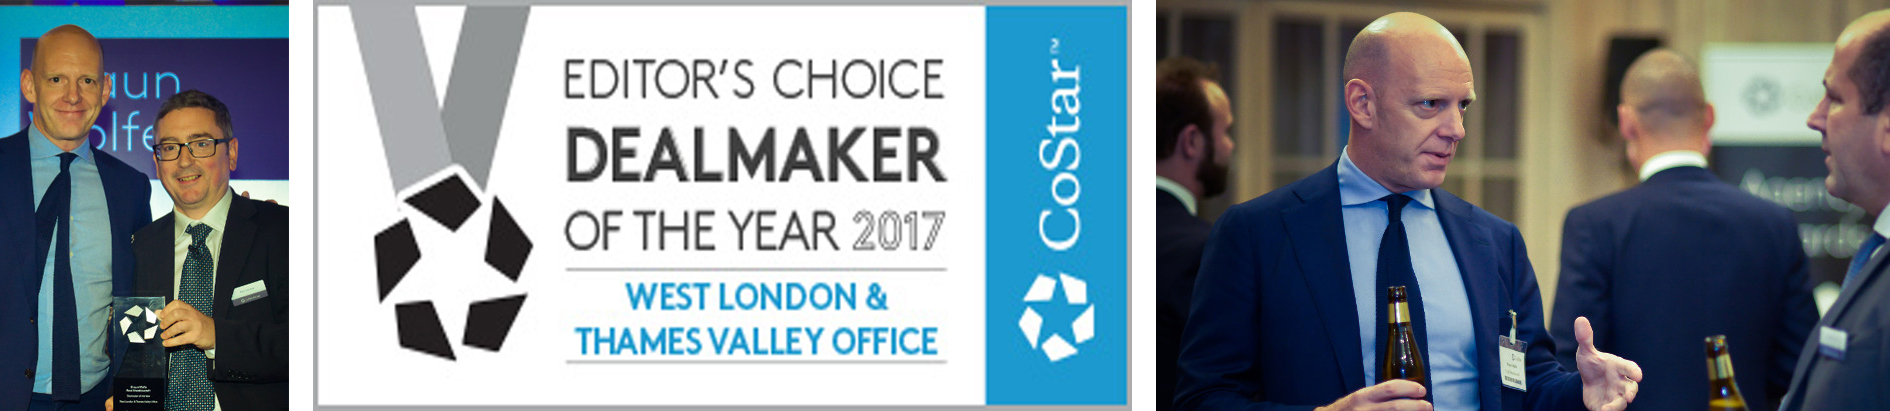 West London Deal-maker of the Year 2017